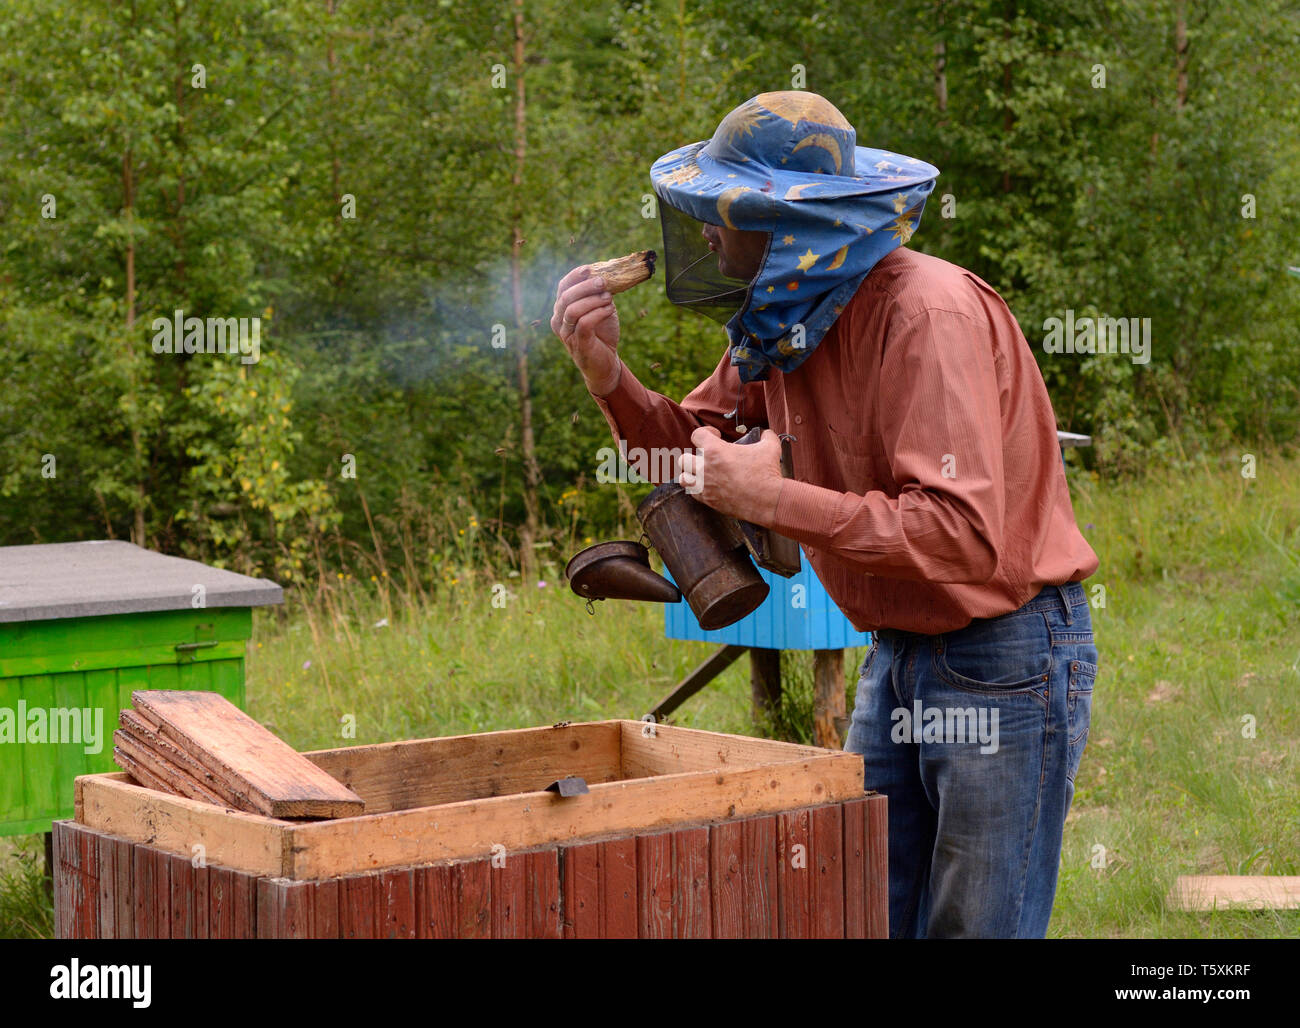 Apiary in the Carpathians. Beekeeper fanning the piece of wood for the smoker for fumigating bees.July 18, 2018. Lugi village, Ukraine - Stock Image